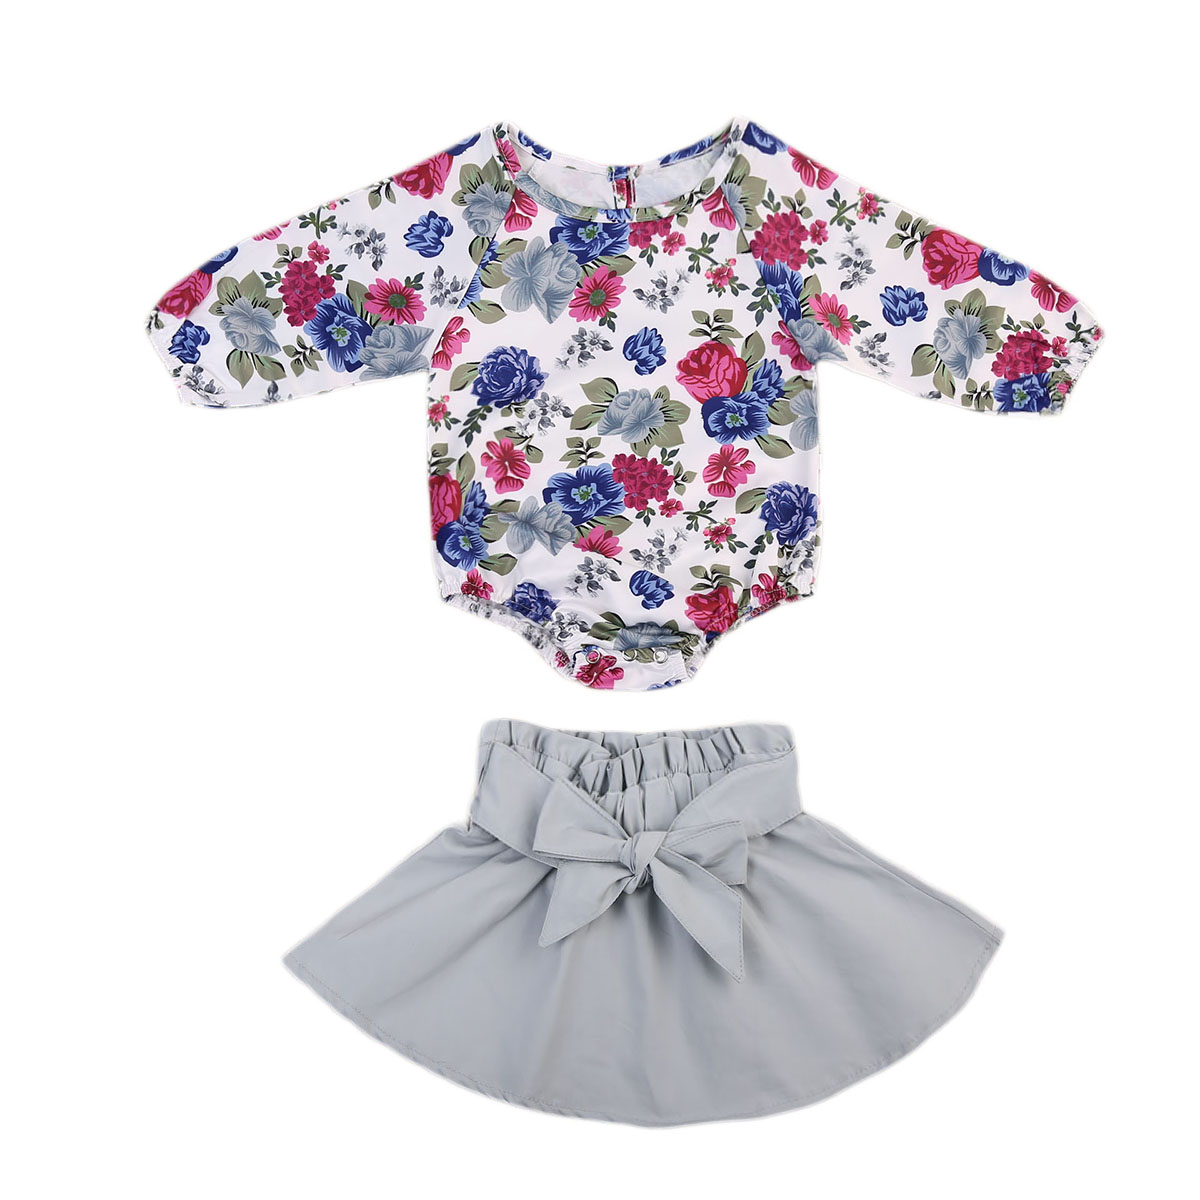 Newborn Toddler Infant Baby Girl Playsuit Long Sleeve Romper Flower Dress 2Pcs Set Outfit Floral Clothes Set newborn toddler infant baby girls floral clothing zipper cute romper jumpsuit long sleeve outfit clothes